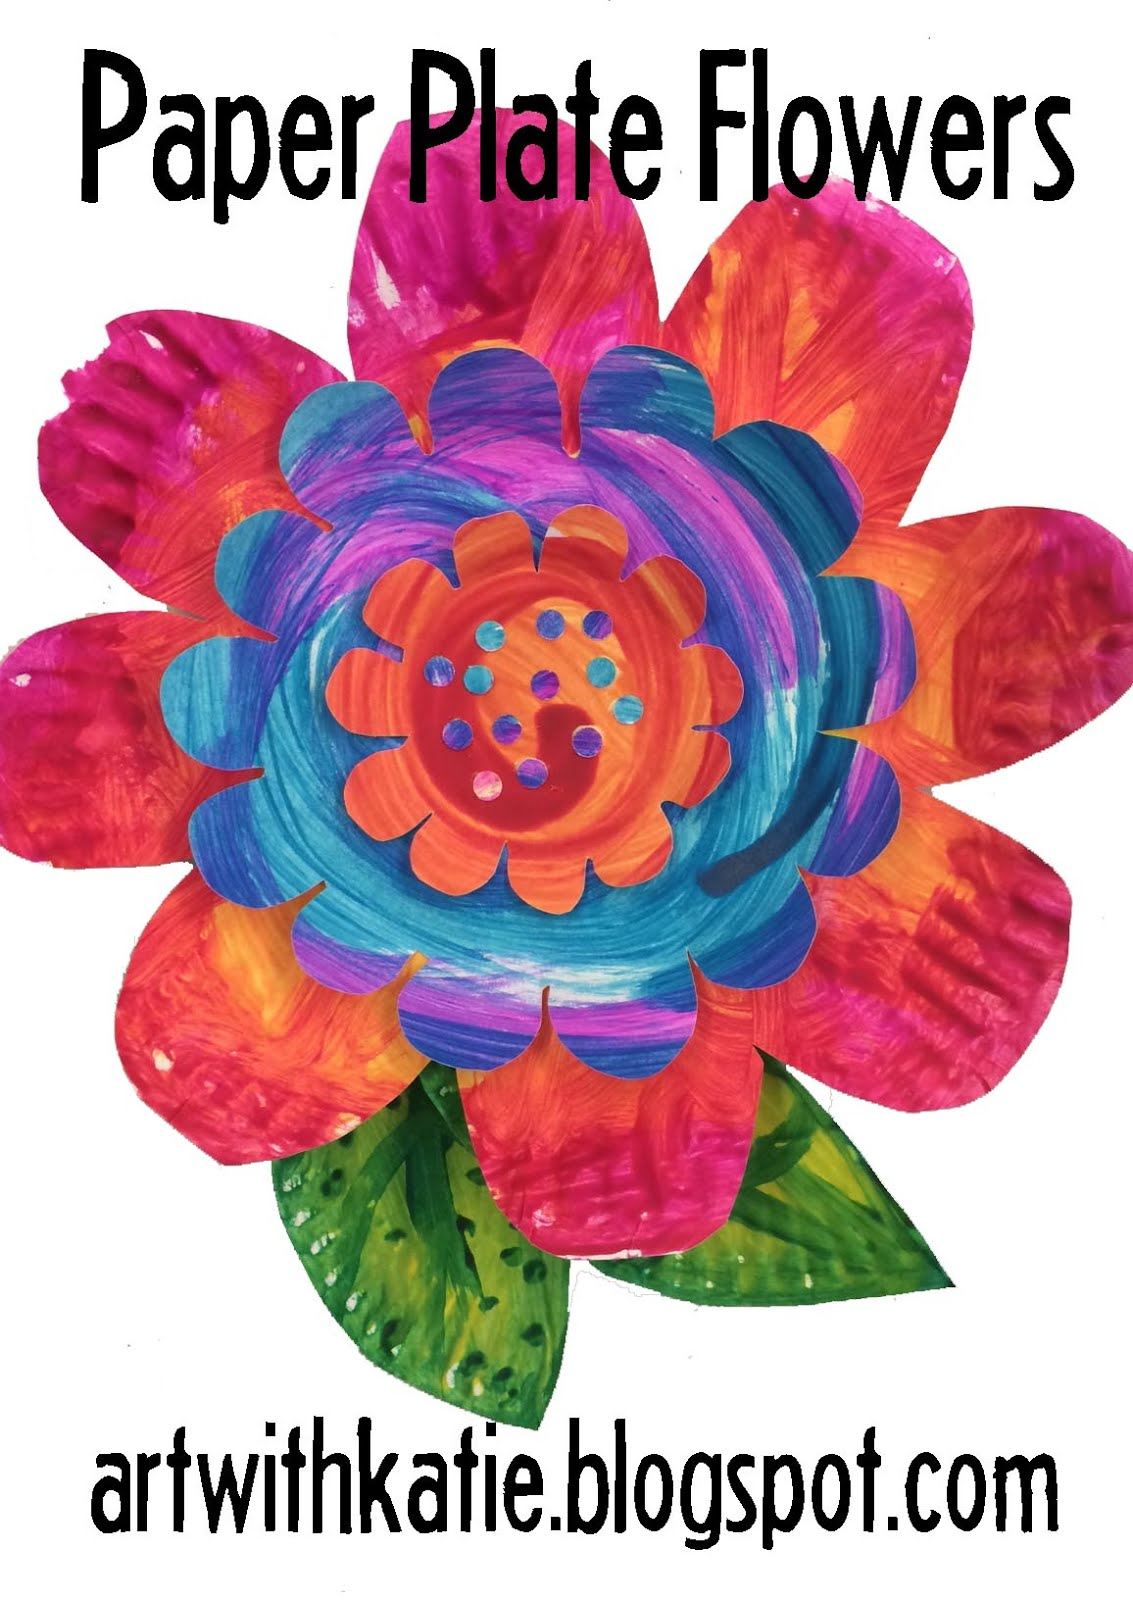 Art With Katie: Art for Kids: Paper Plate Flowers